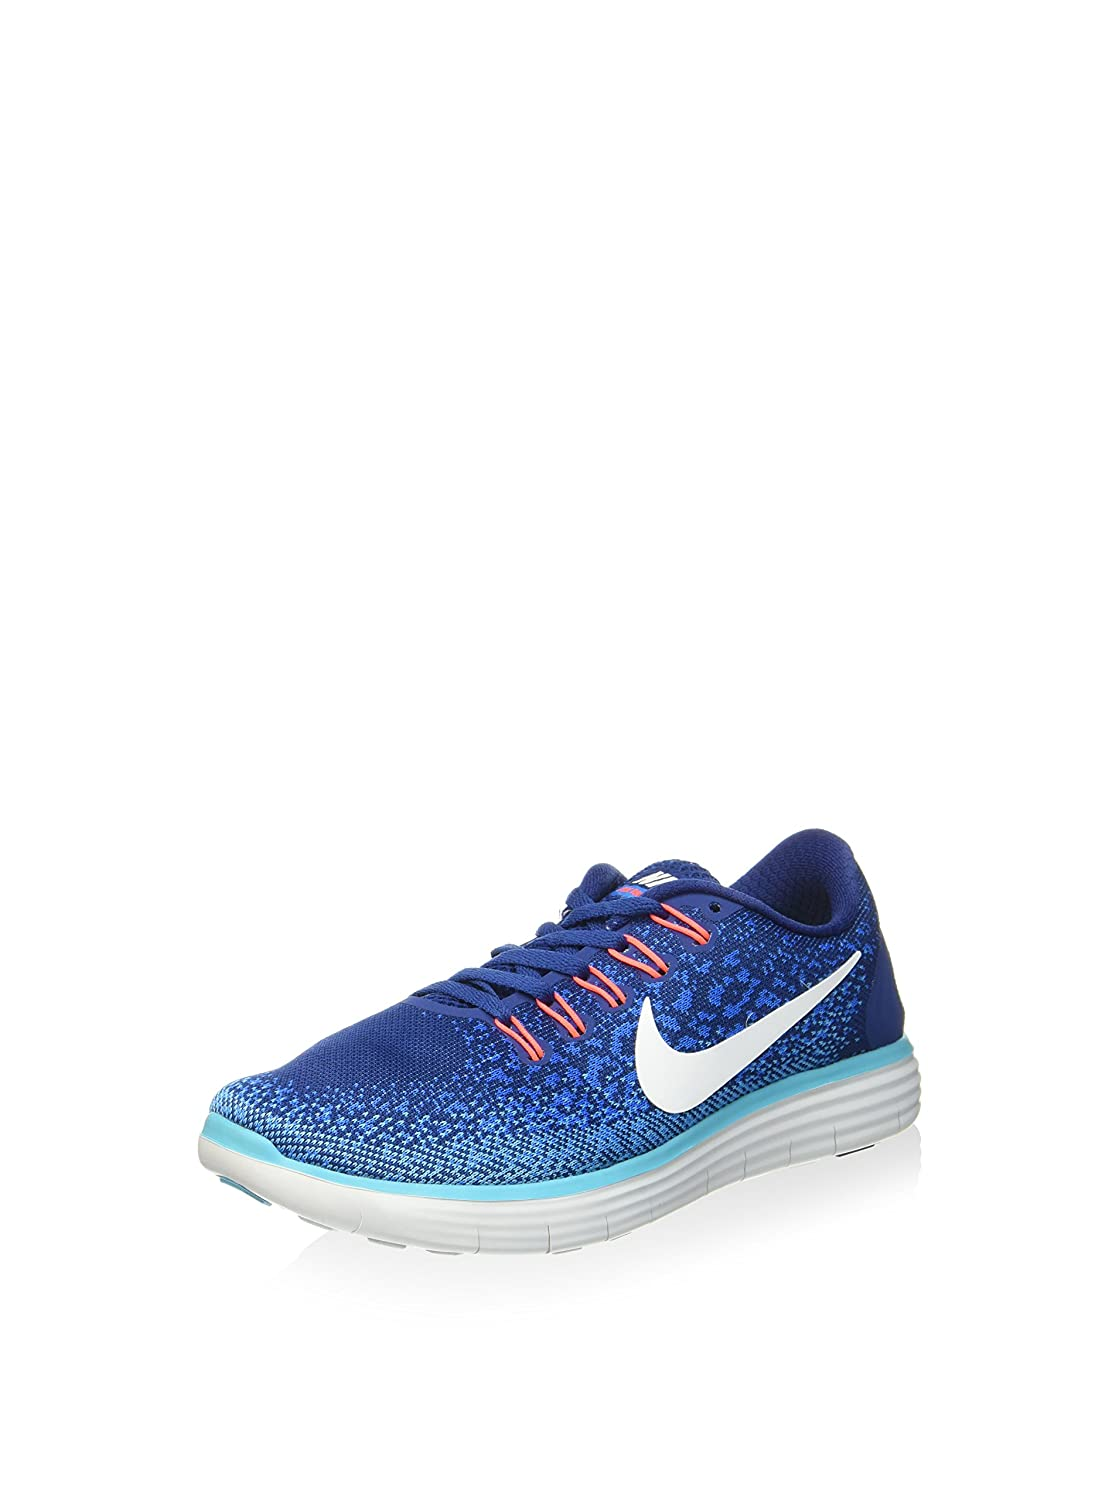 NIKE Womens Free Rn Distance Running Shoe B01HGFXP30 12 B(M) US|Coastal Blue/Off White-heritage Cyan